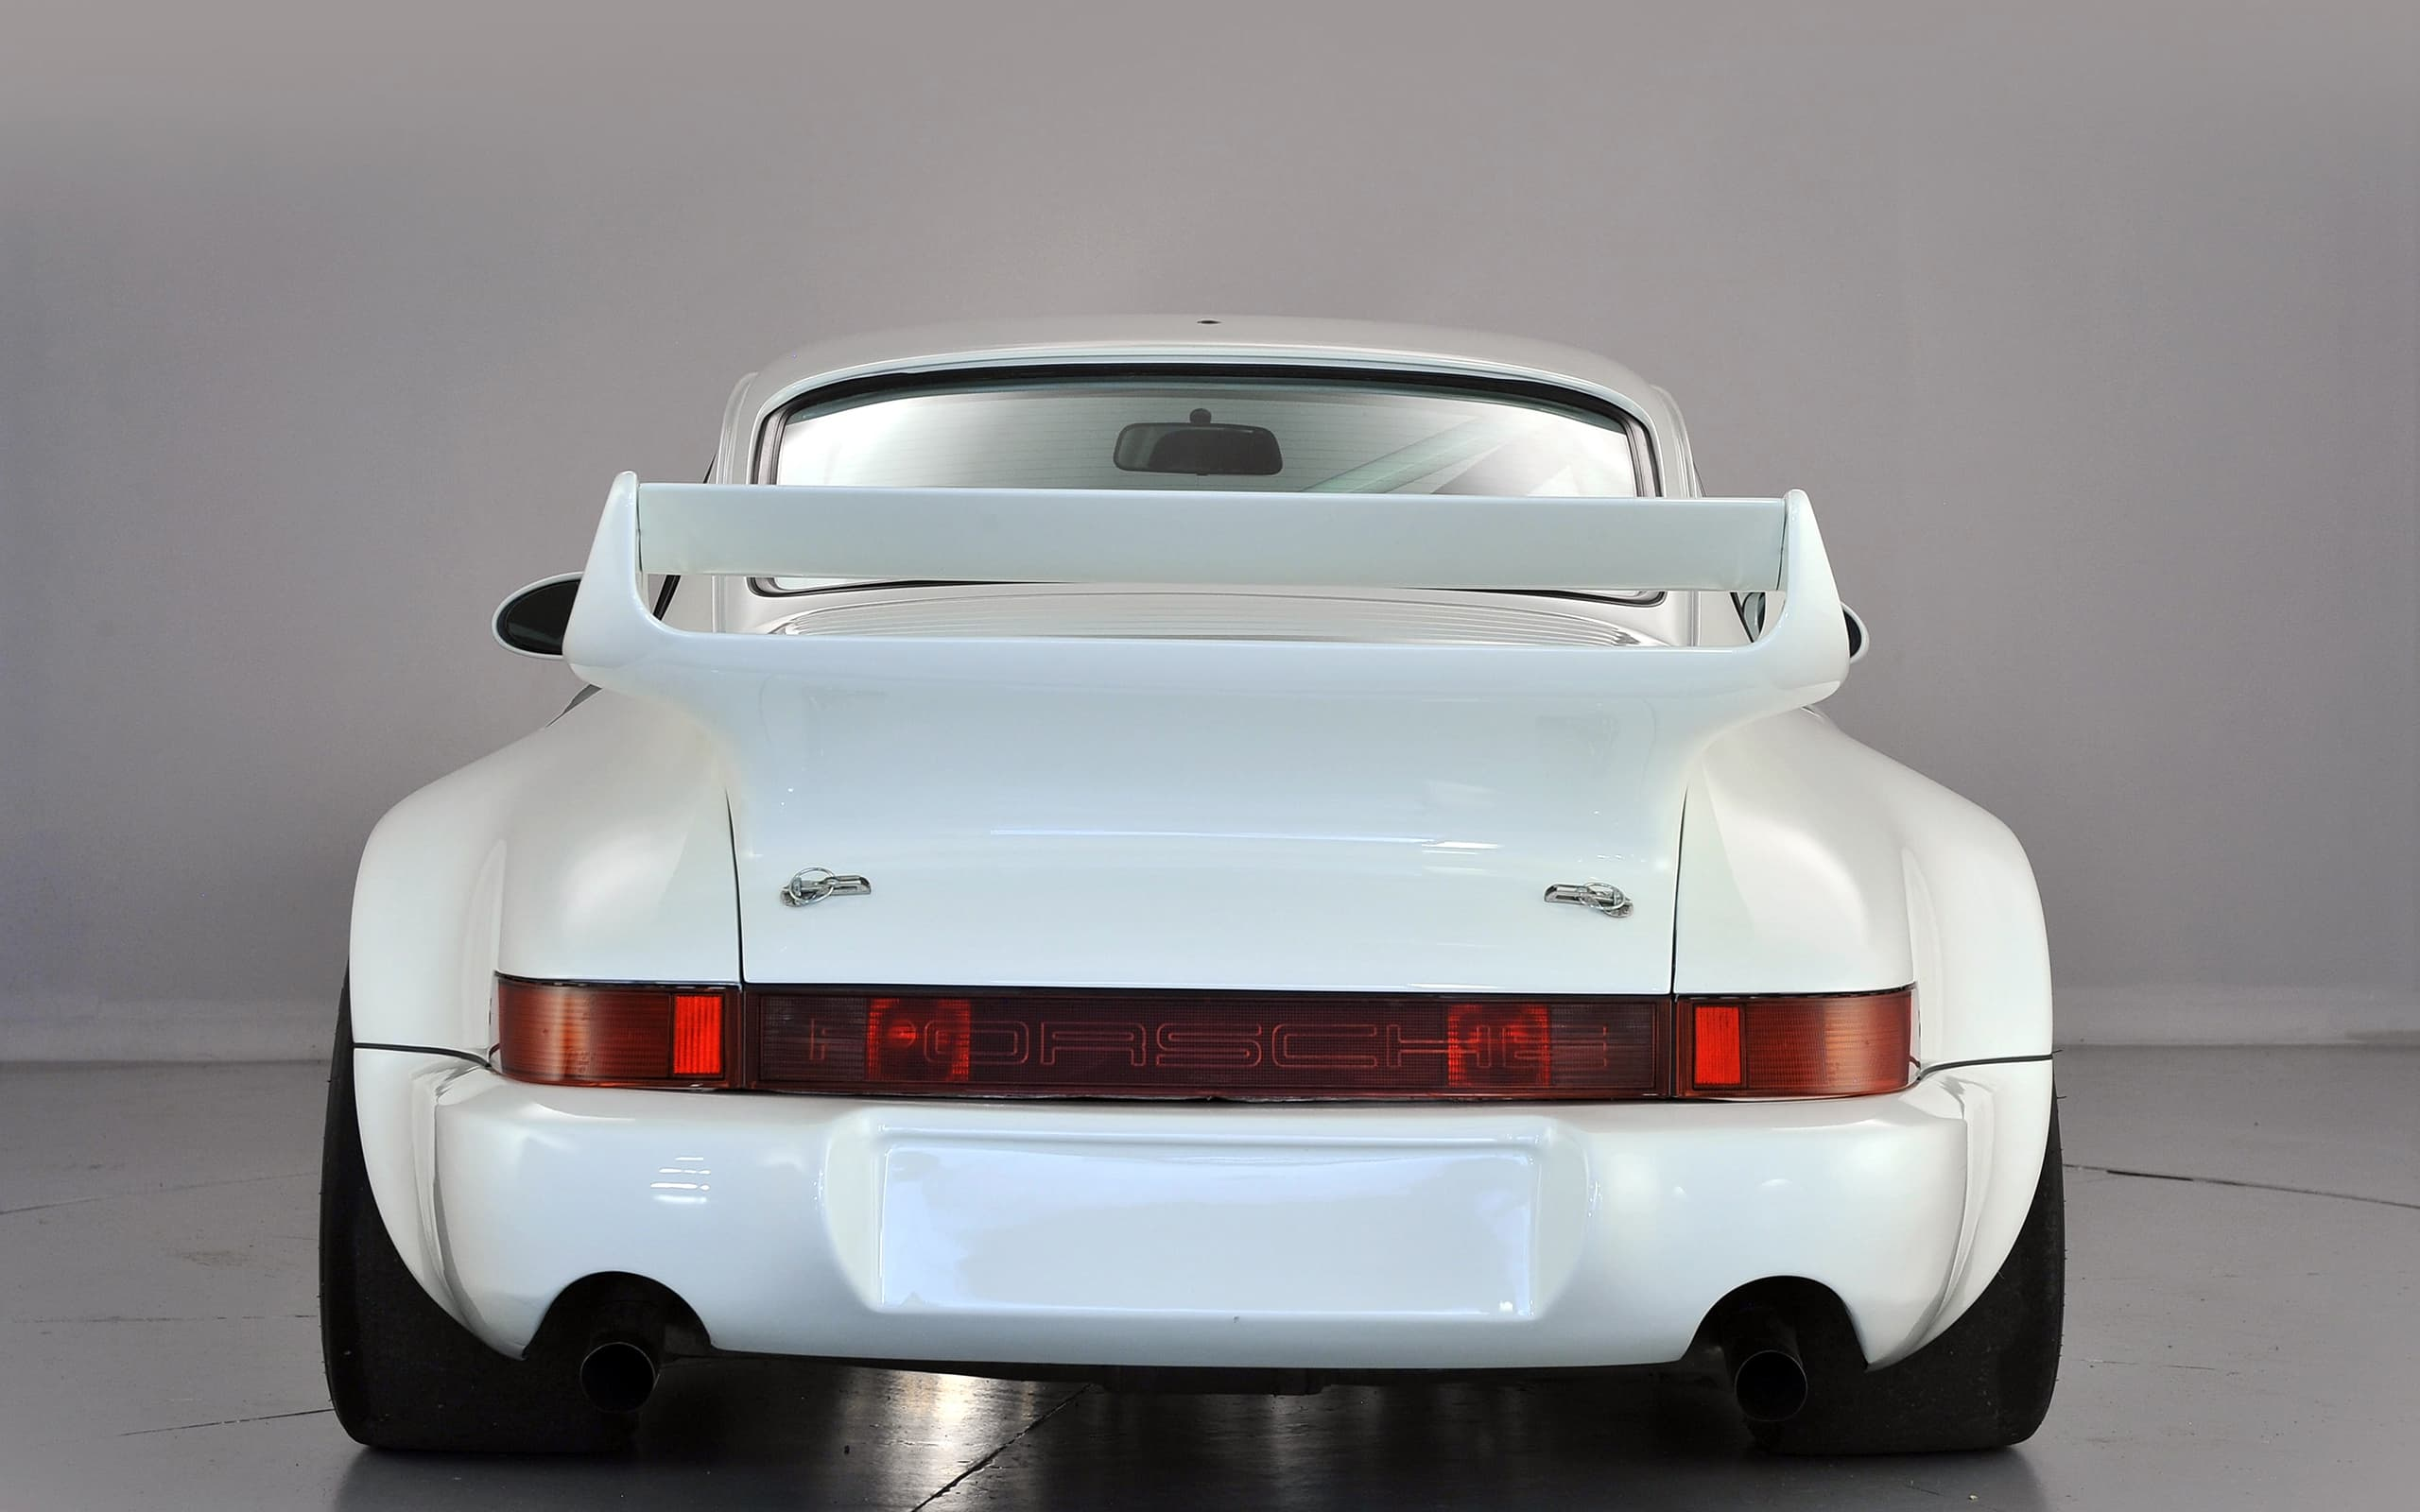 1993 Porsche 911 Carrera RSR rear HR wallpaper